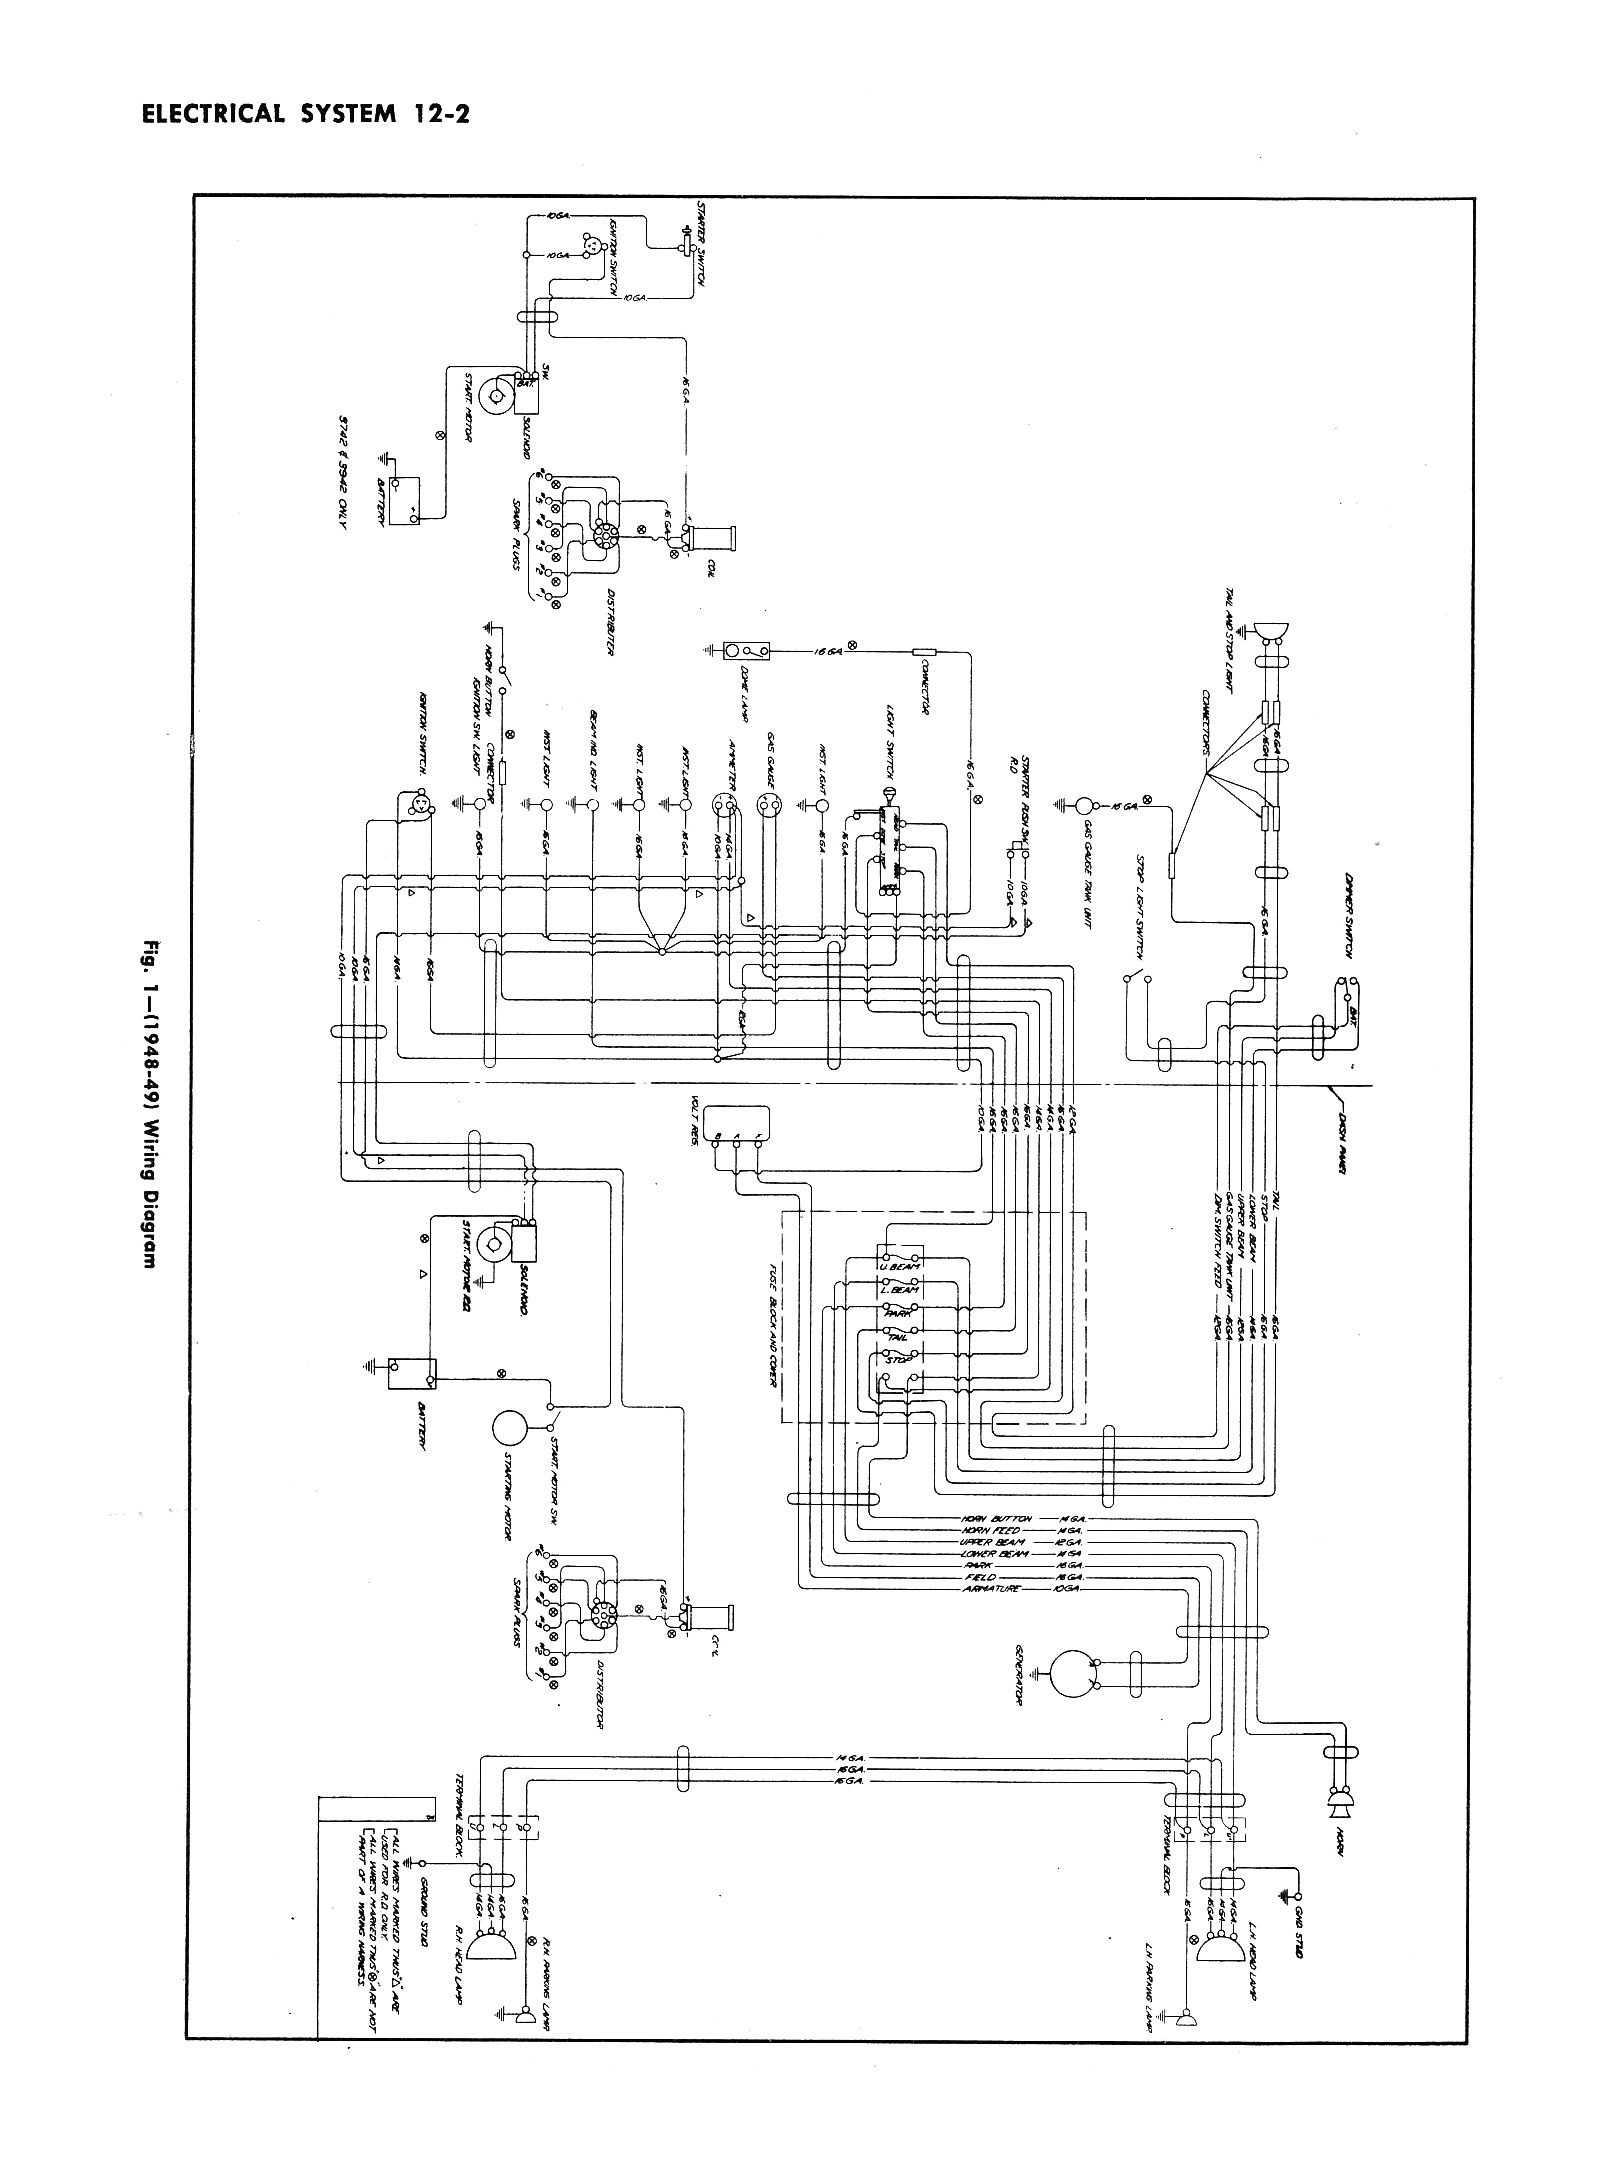 1986 chevy truck starter wiring diagram mini cooper cooling for dodge pickup magnum